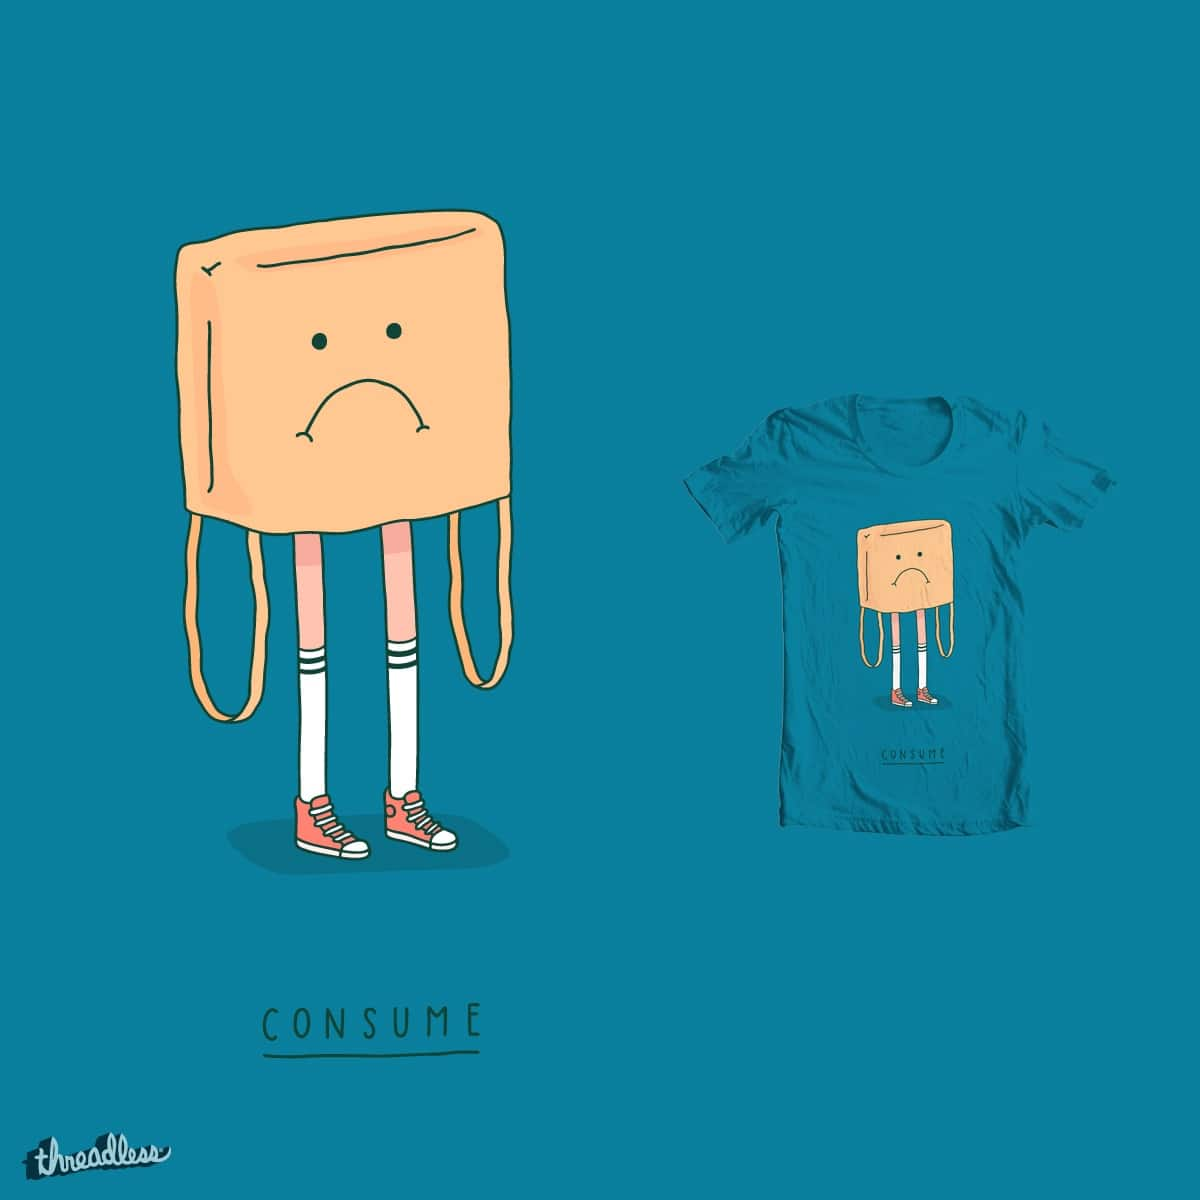 Consume by Haasbroek on Threadless